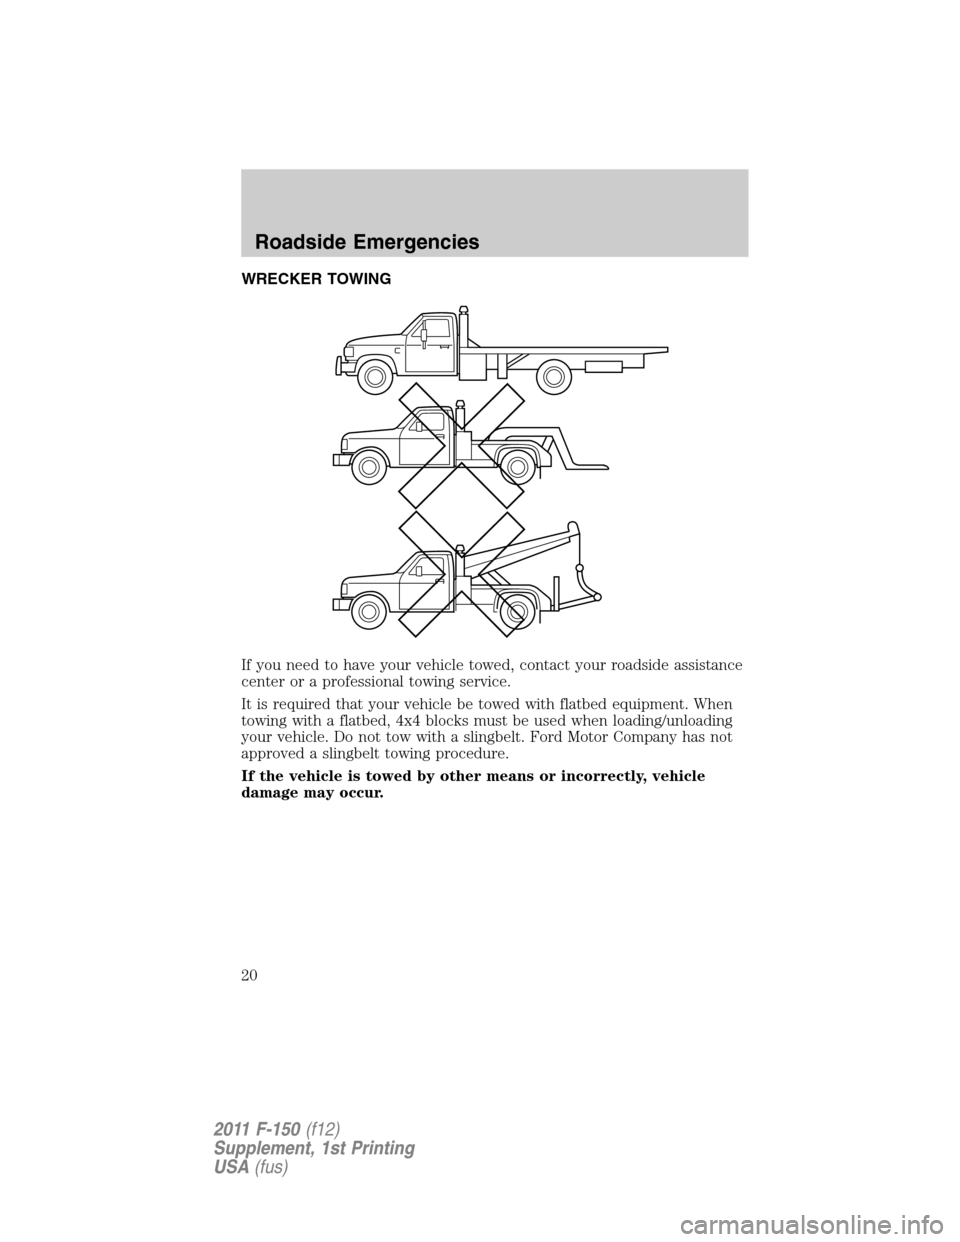 FORD F150 2011 12.G Raptor Supplement Manual (31 Pages)